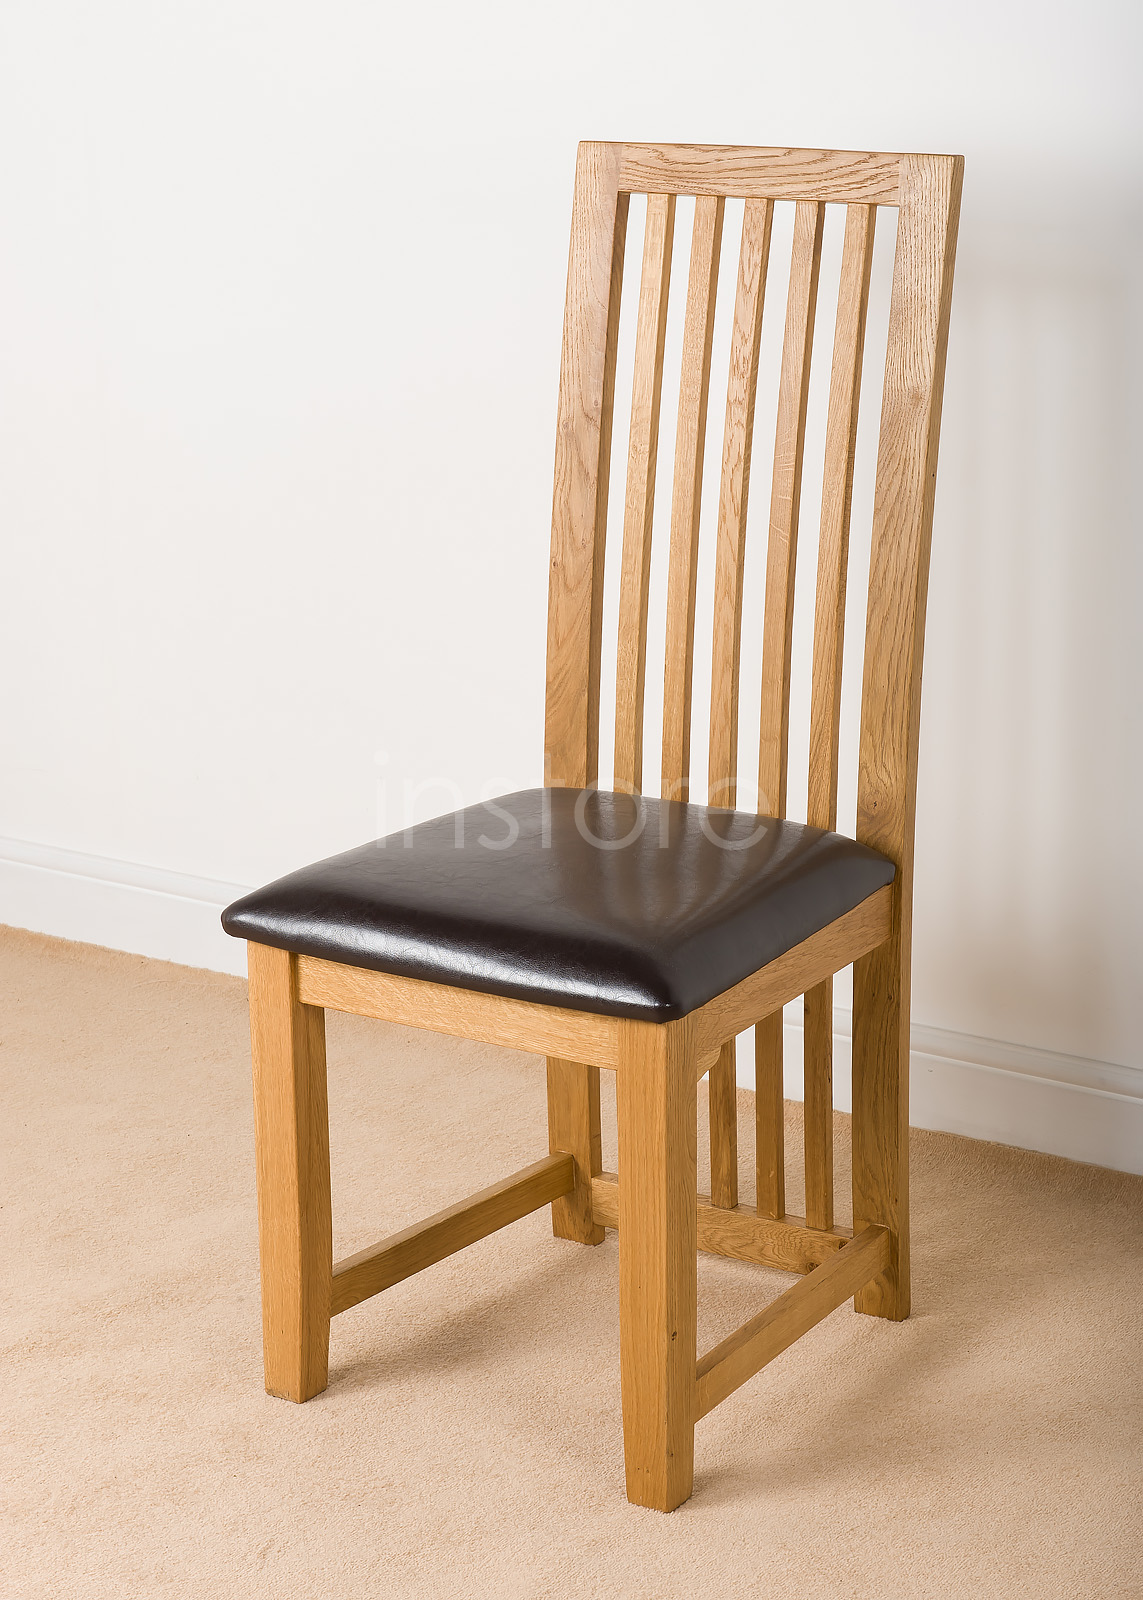 Dining room chairs made of oak loxley dining room chair made of solid oak untreated dining room sets made of oak RXVCJOW